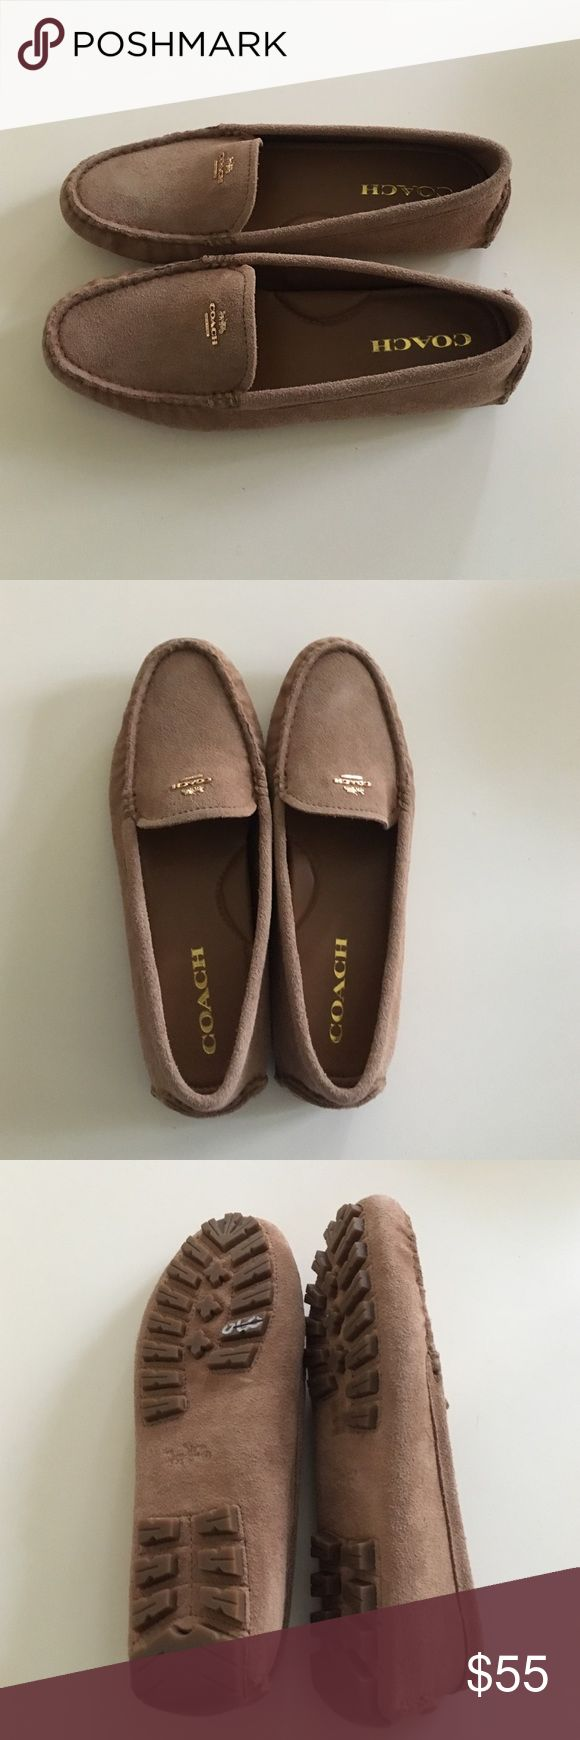 Authentic Coach suede loafers size 8b This is a pair of authentic brown suede Coach loafers with gold letters, never worn Coach Shoes Flats & Loafers